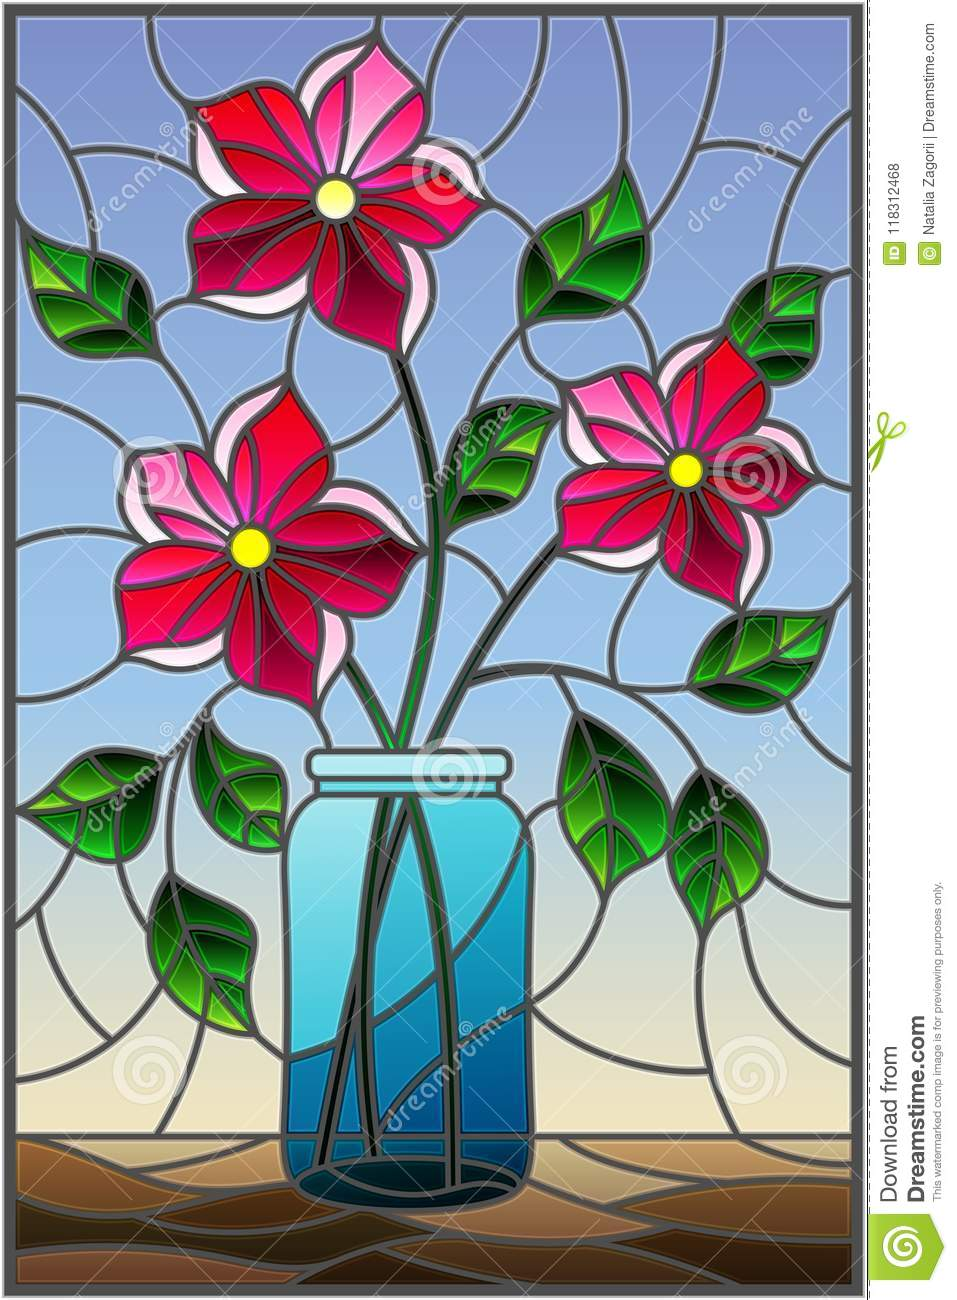 Stained Glass Illustration With Still Life Bouquet Of Pink Flowers